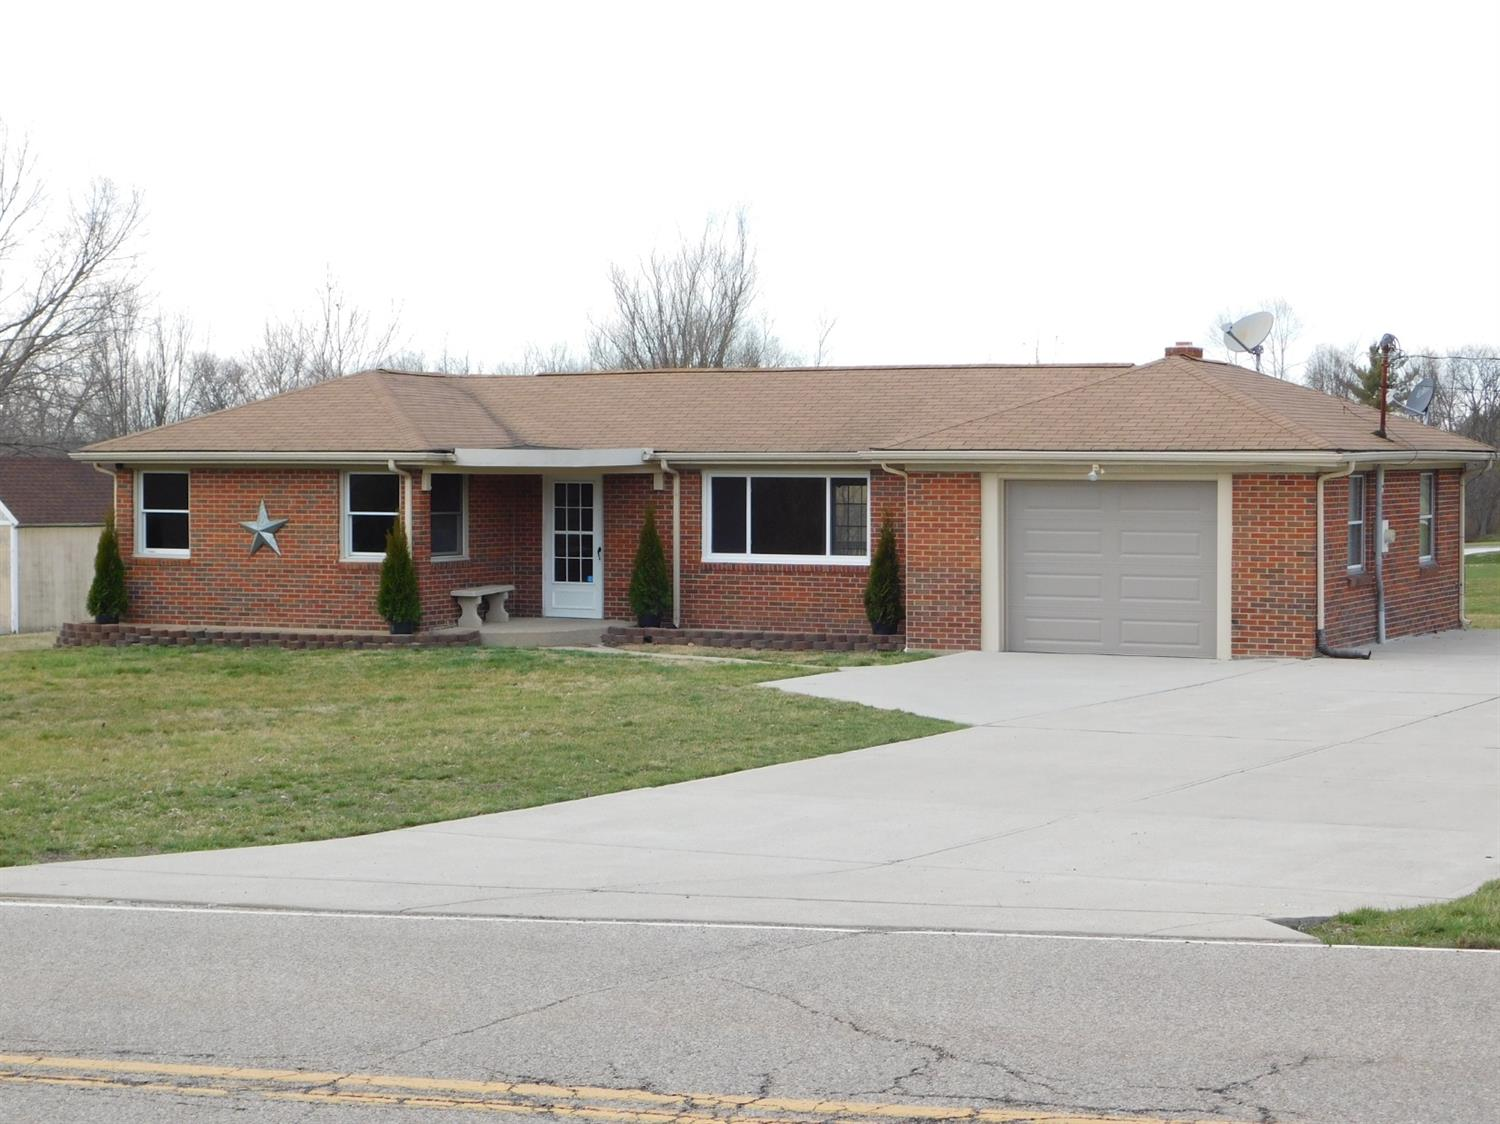 5709 Dearth Rd Clearcreek Twp. OH